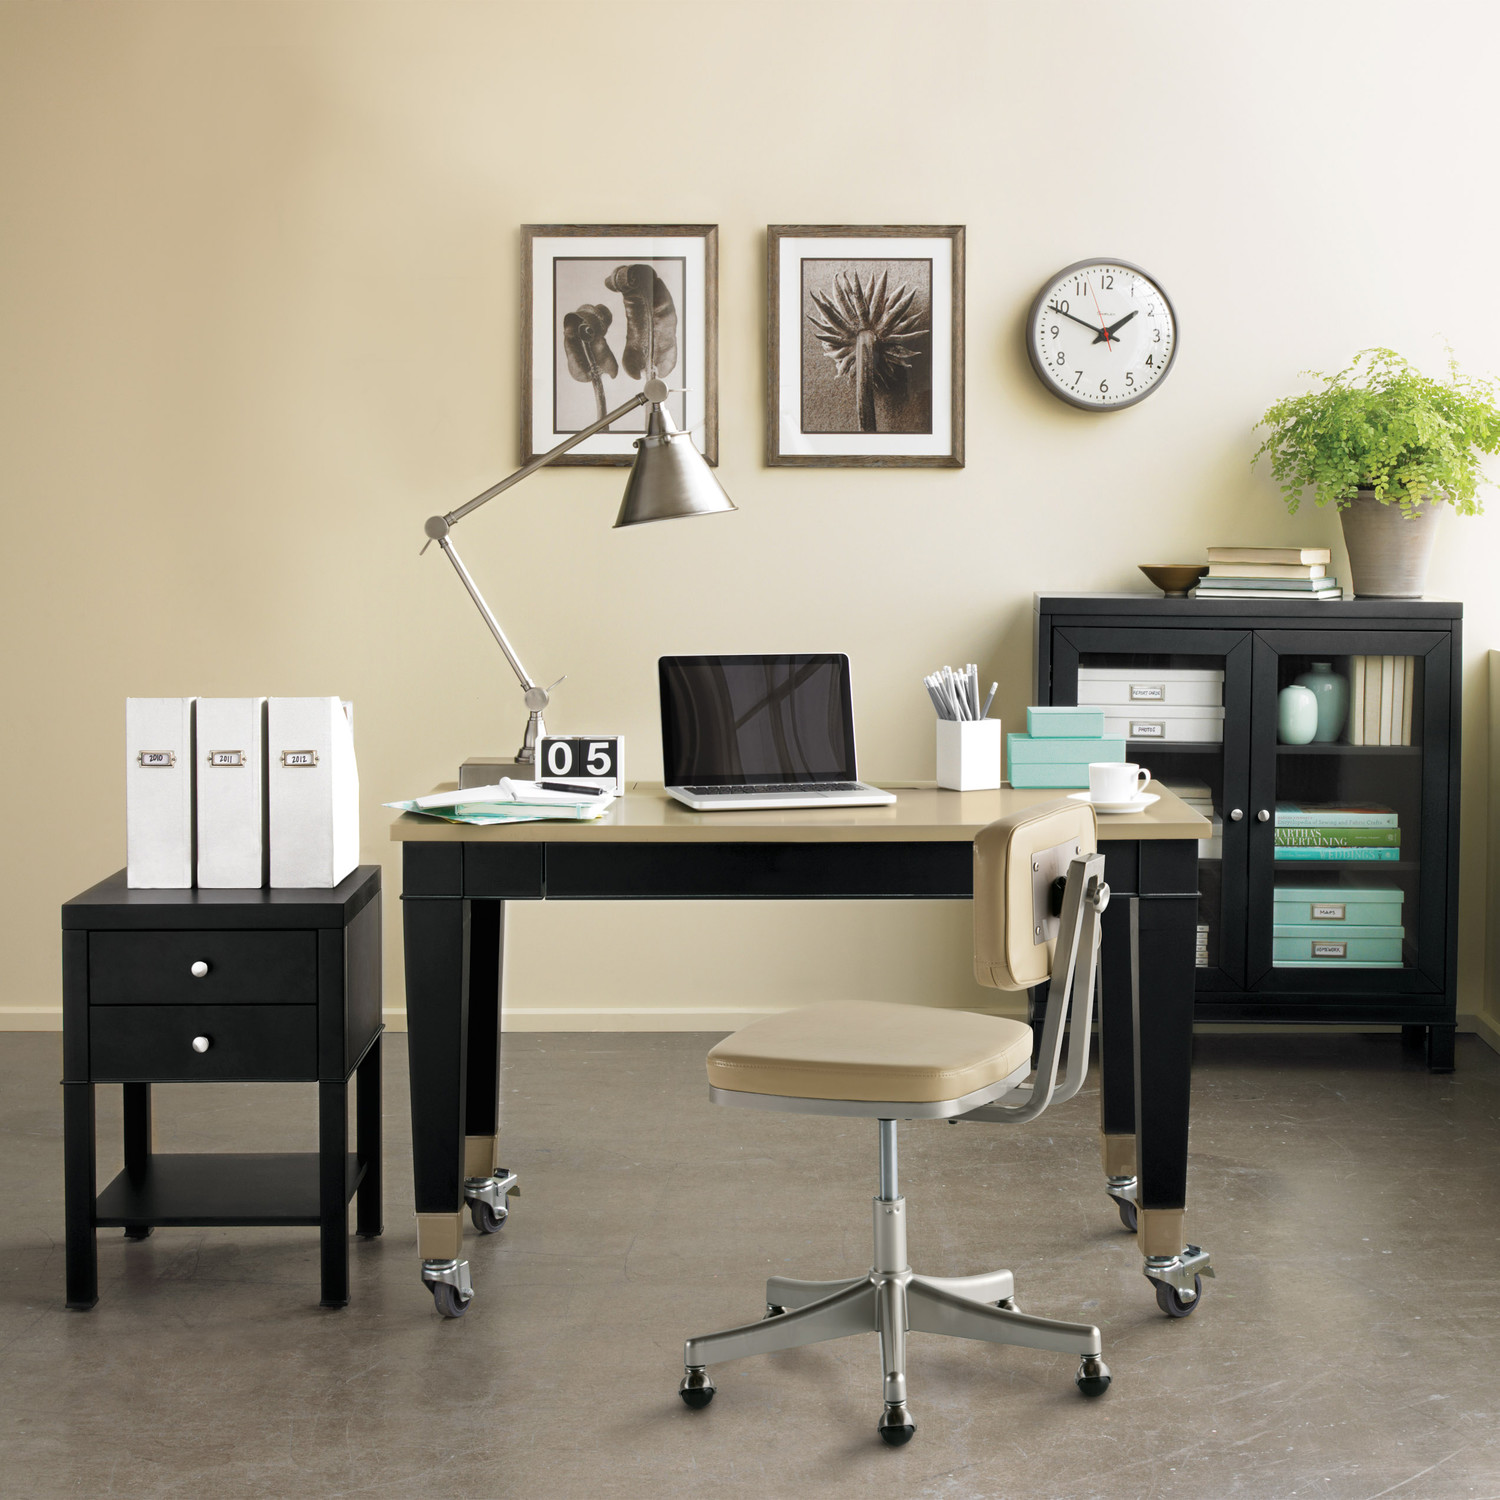 Martha stewart home office furniture martha stewart Home furniture outlet cerritos